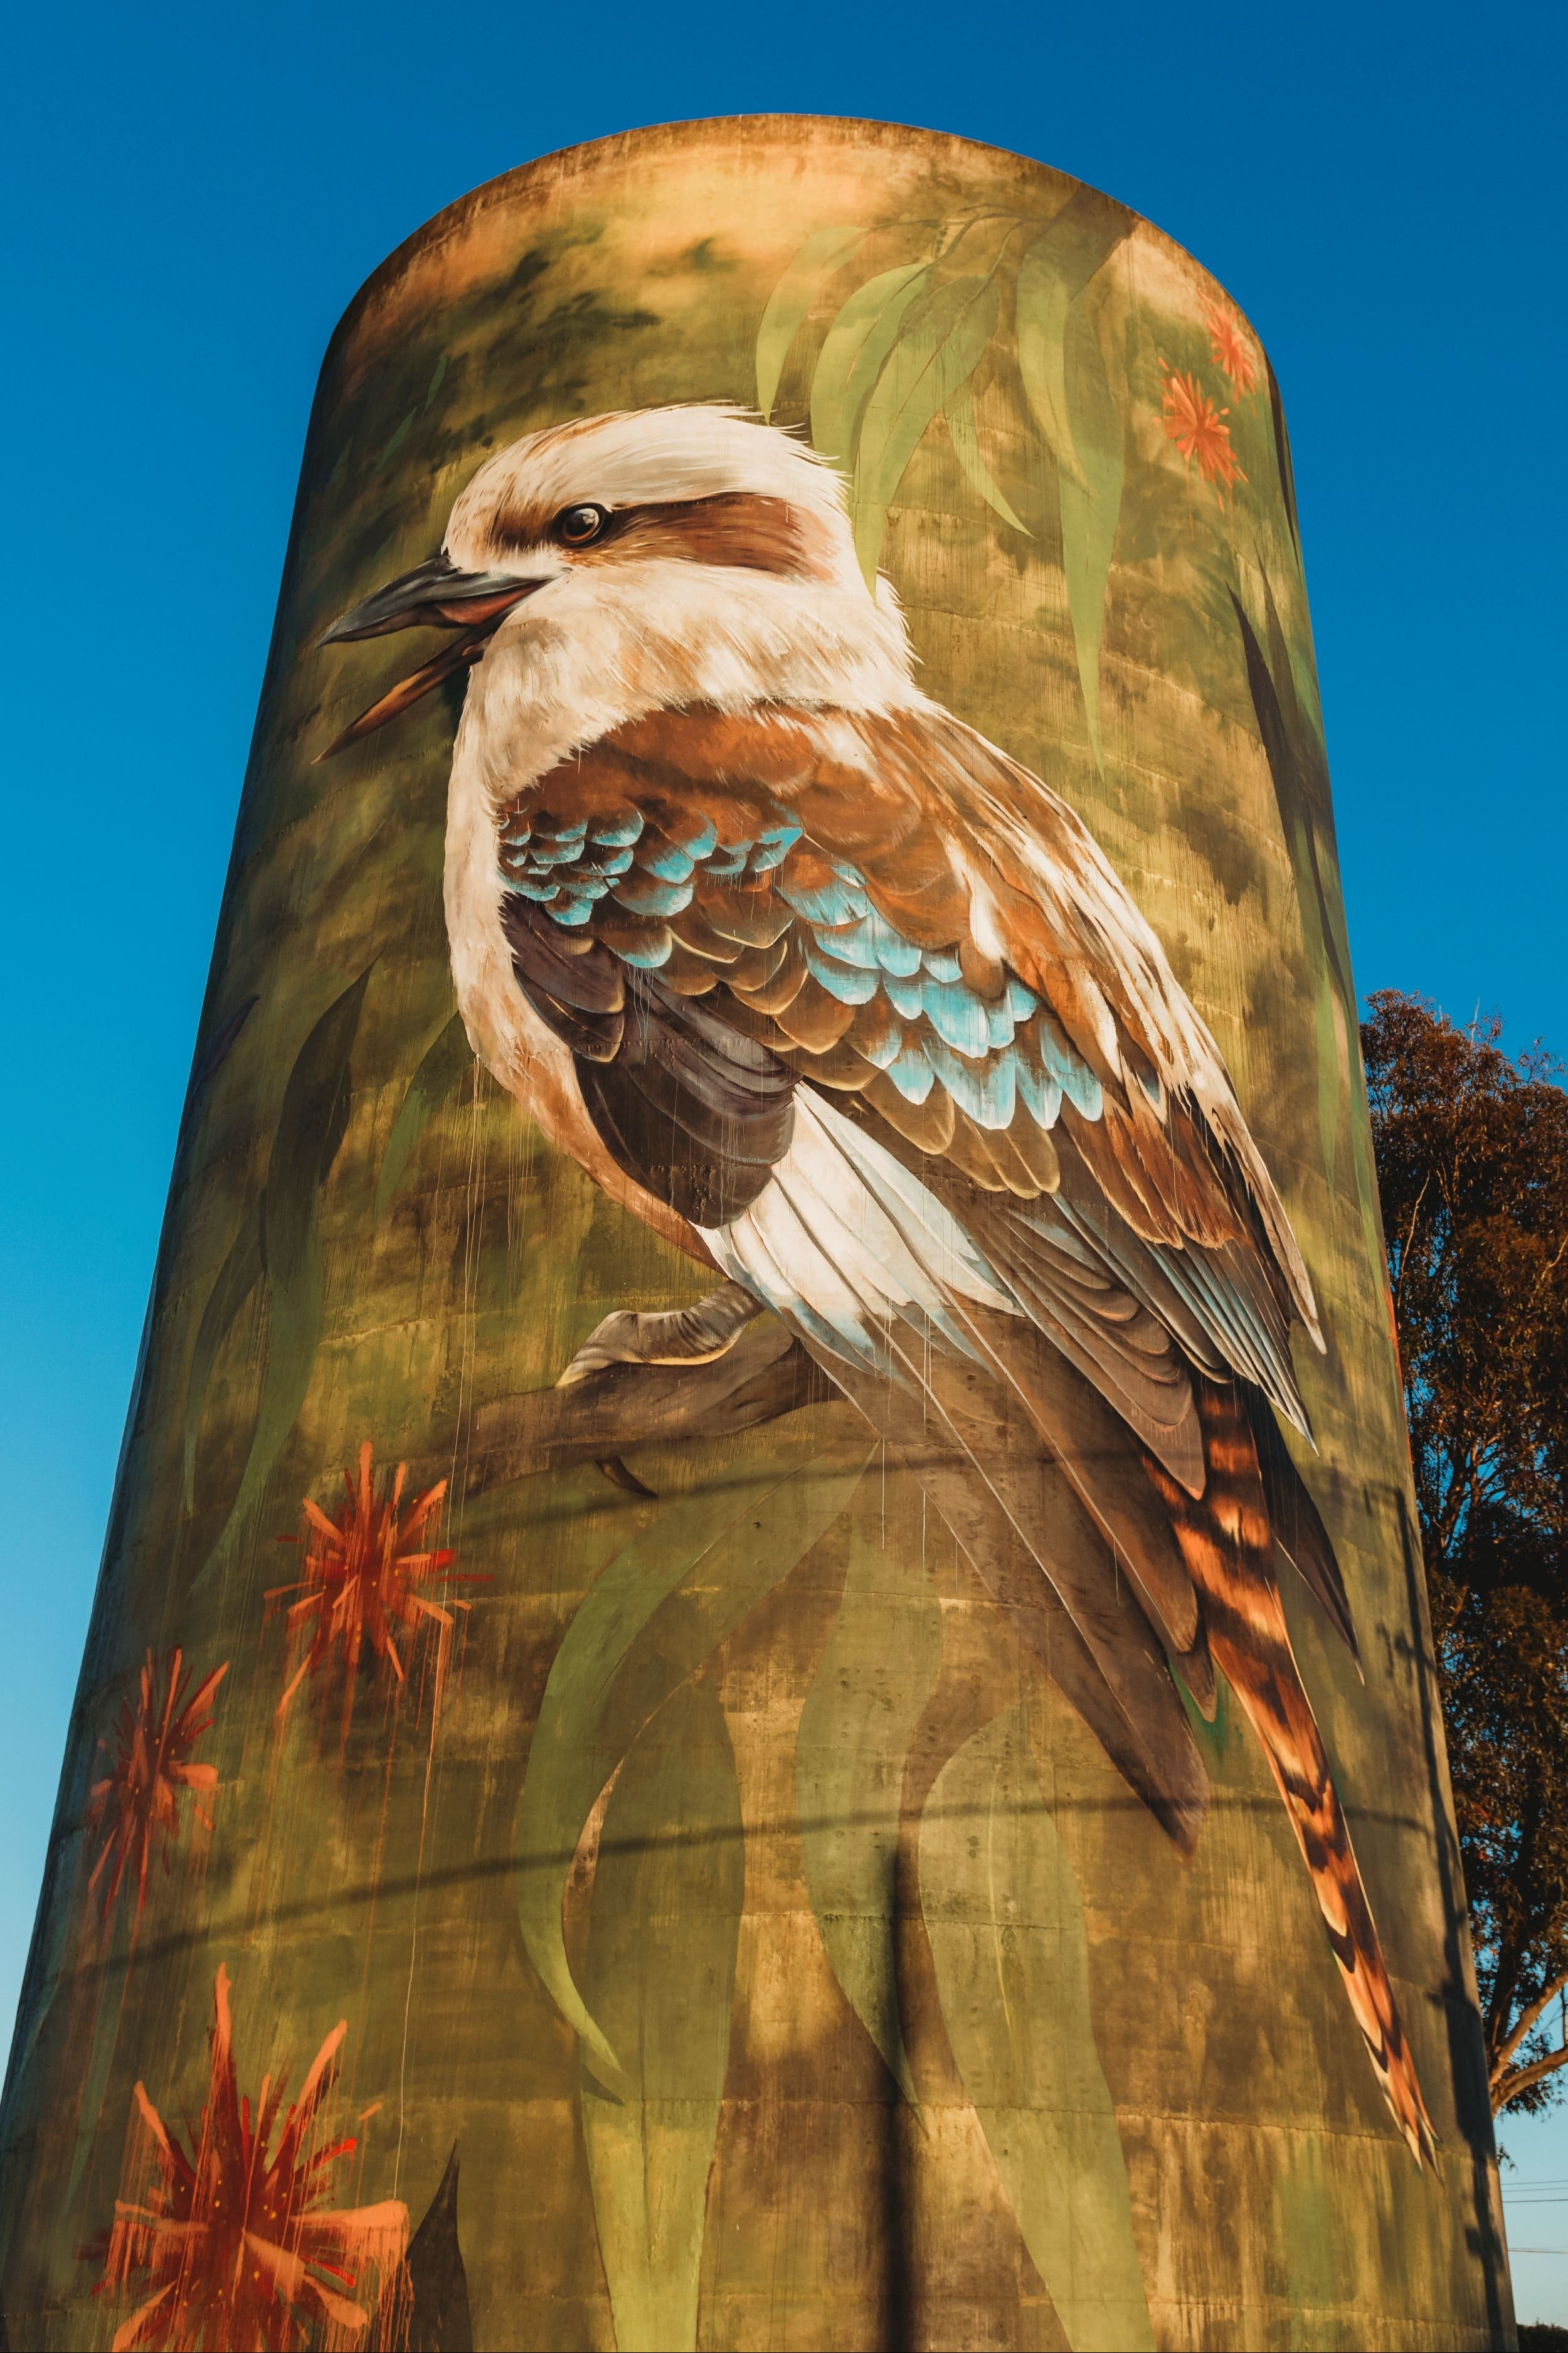 Deniliquin Water Tower Mural - Accommodation Gold Coast